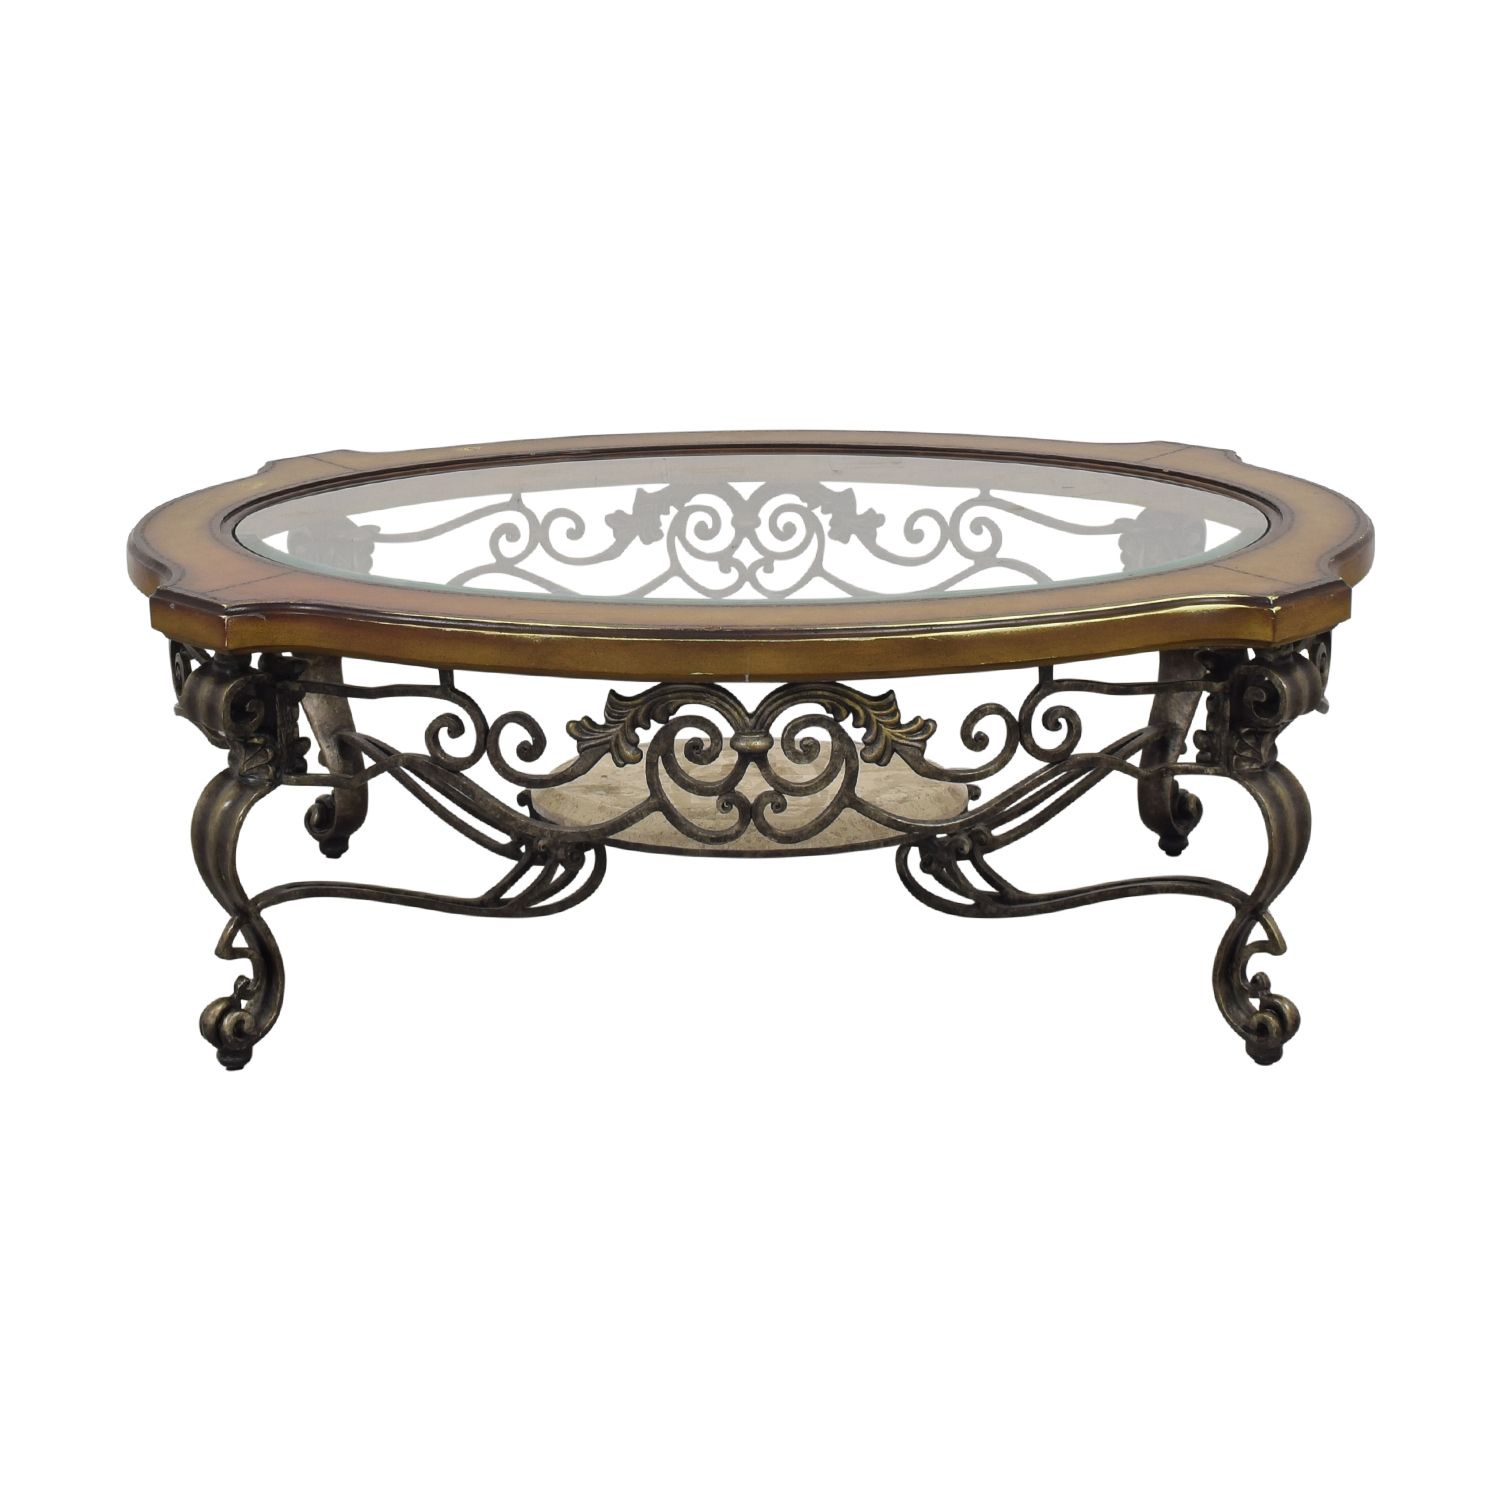 Thomasville Thomasville Style Oval Coffee Table used